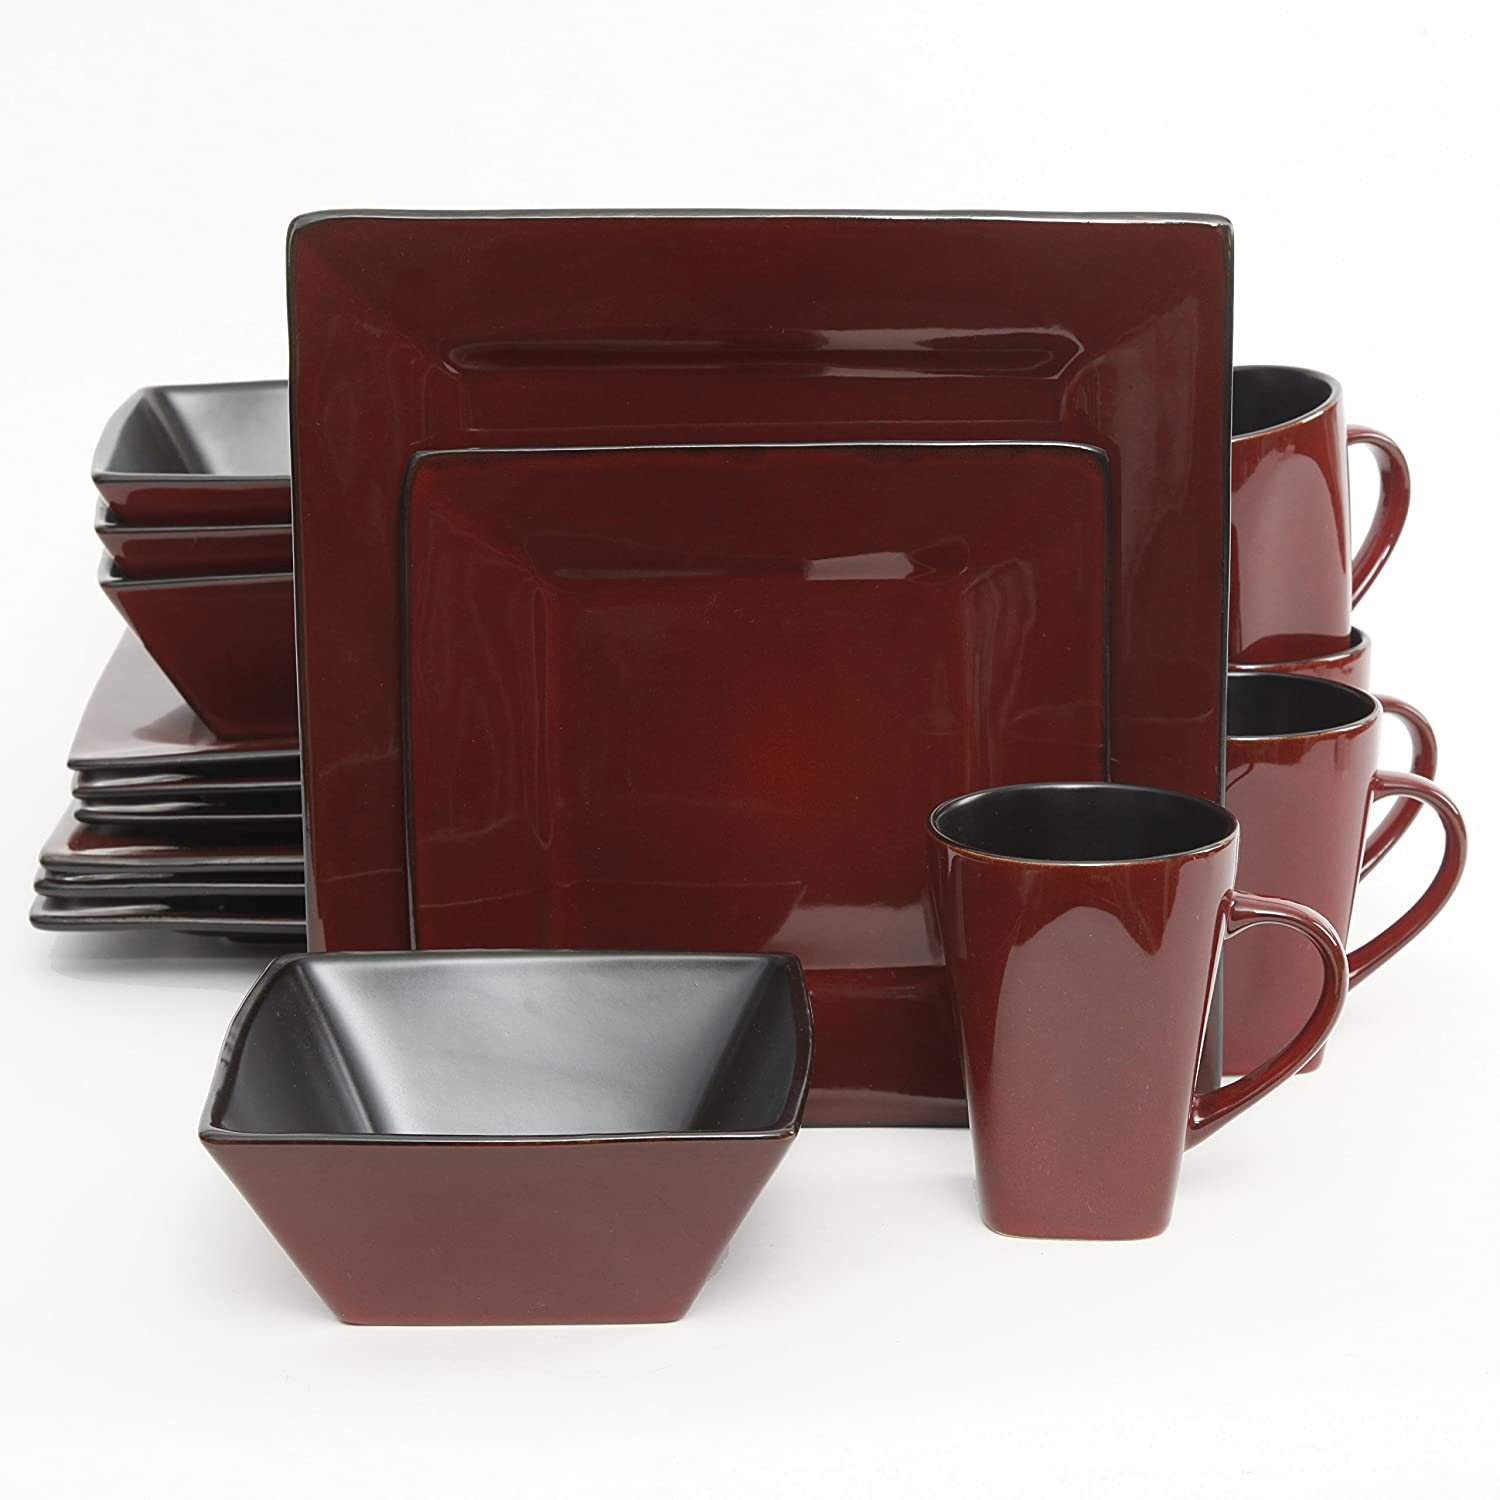 Gibson Elite Kiesling 16 Piece Dinnerware Set, Red